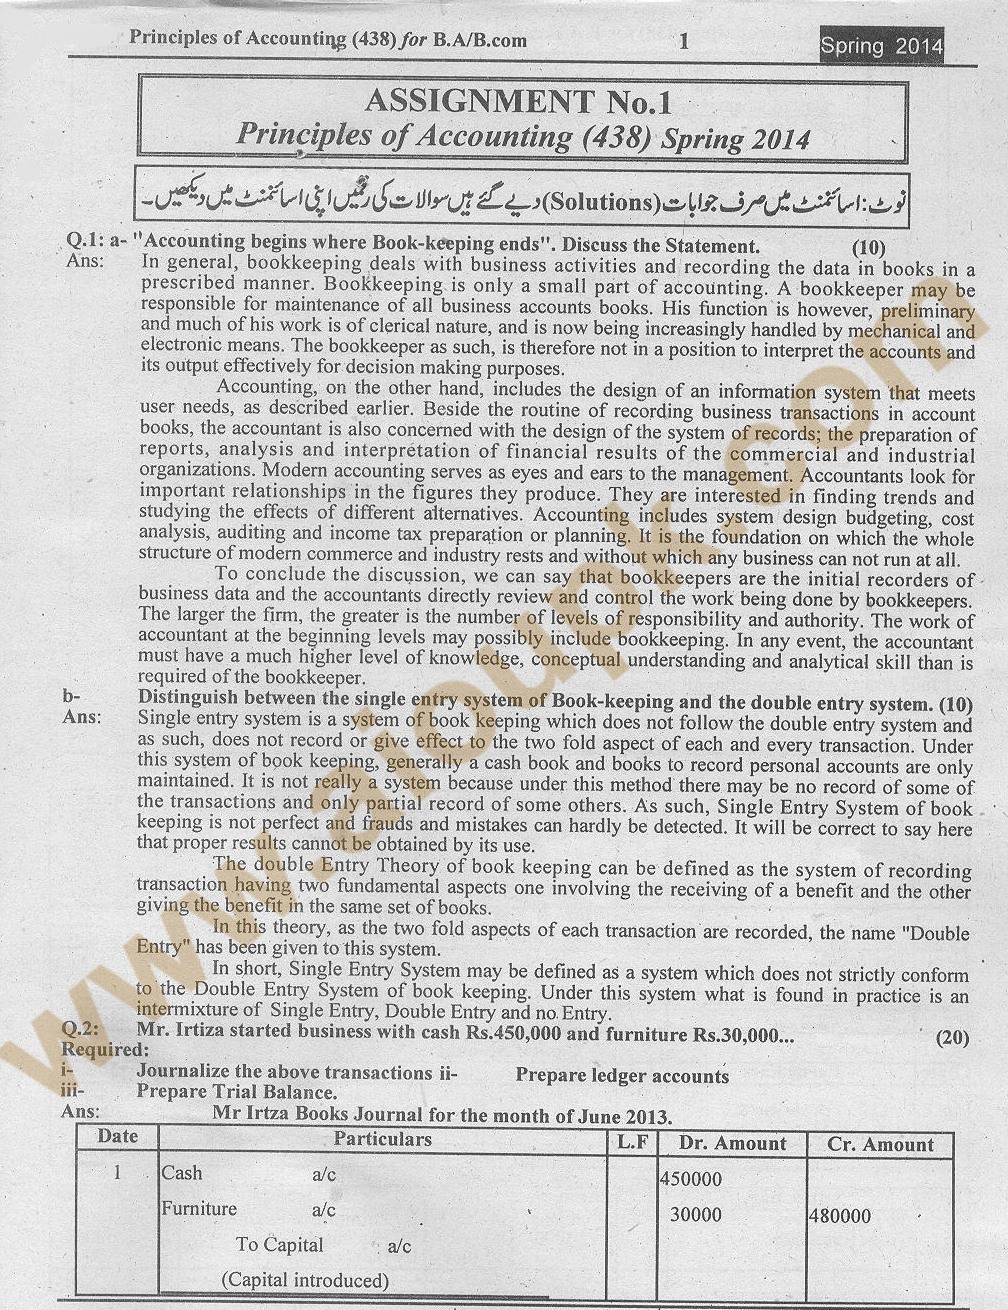 principles of accounting code 438 solved assignments 2014 of aiou solved assignment aiou spring 2014